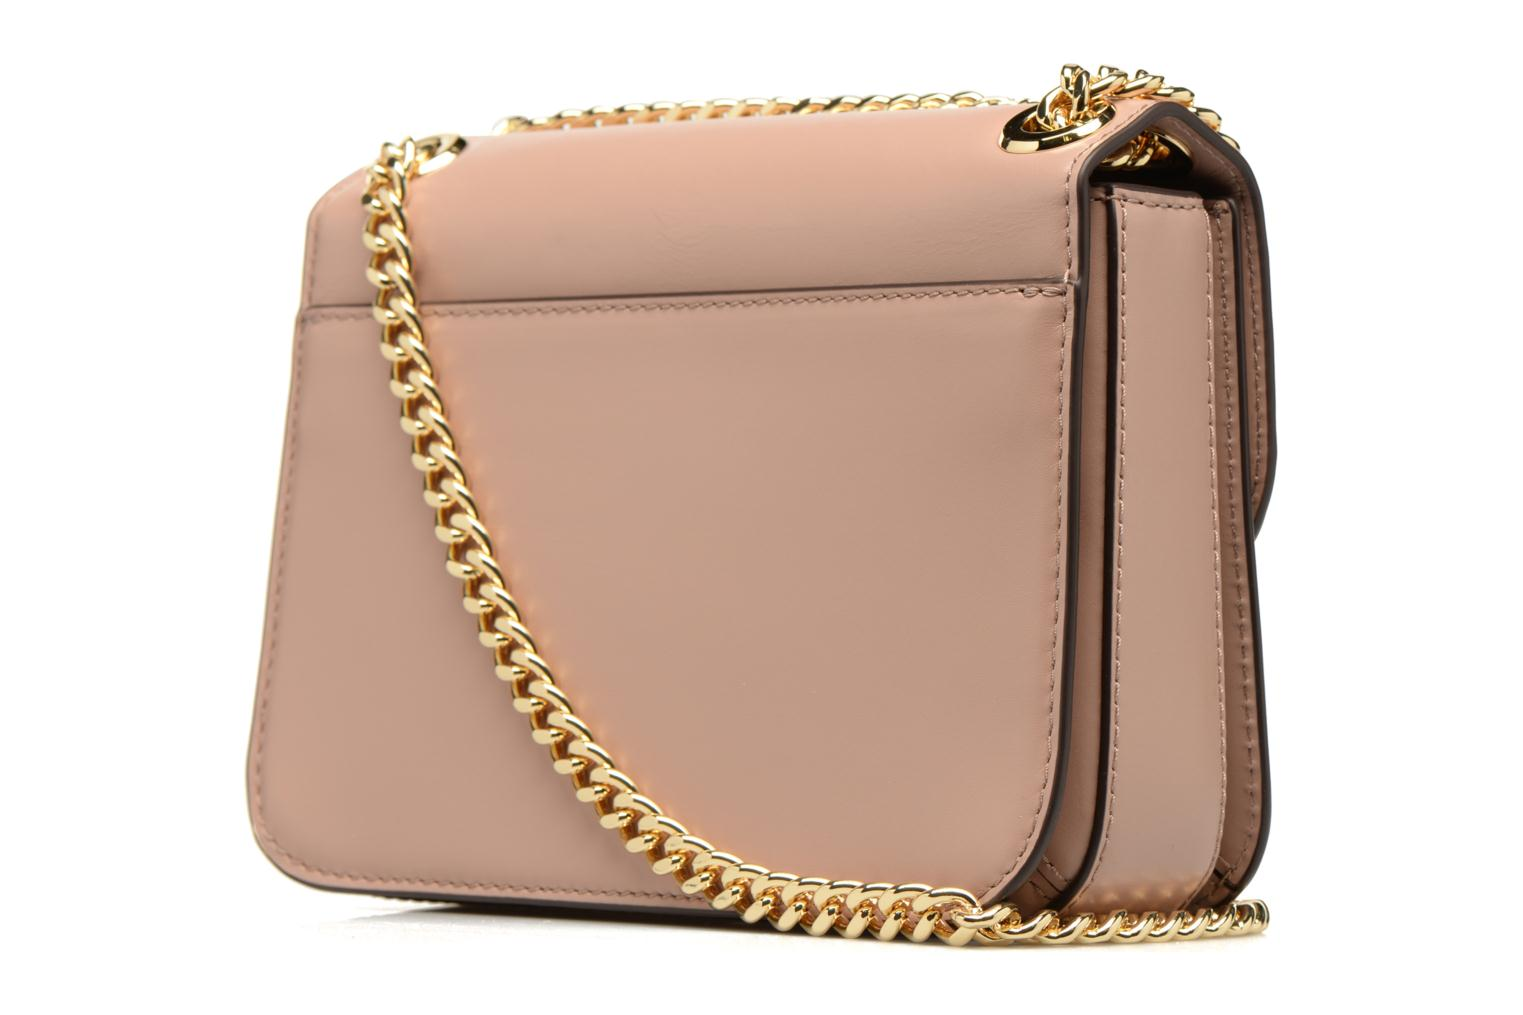 SLOAN EDITOR MD CHAIN SHOULDER Fawn